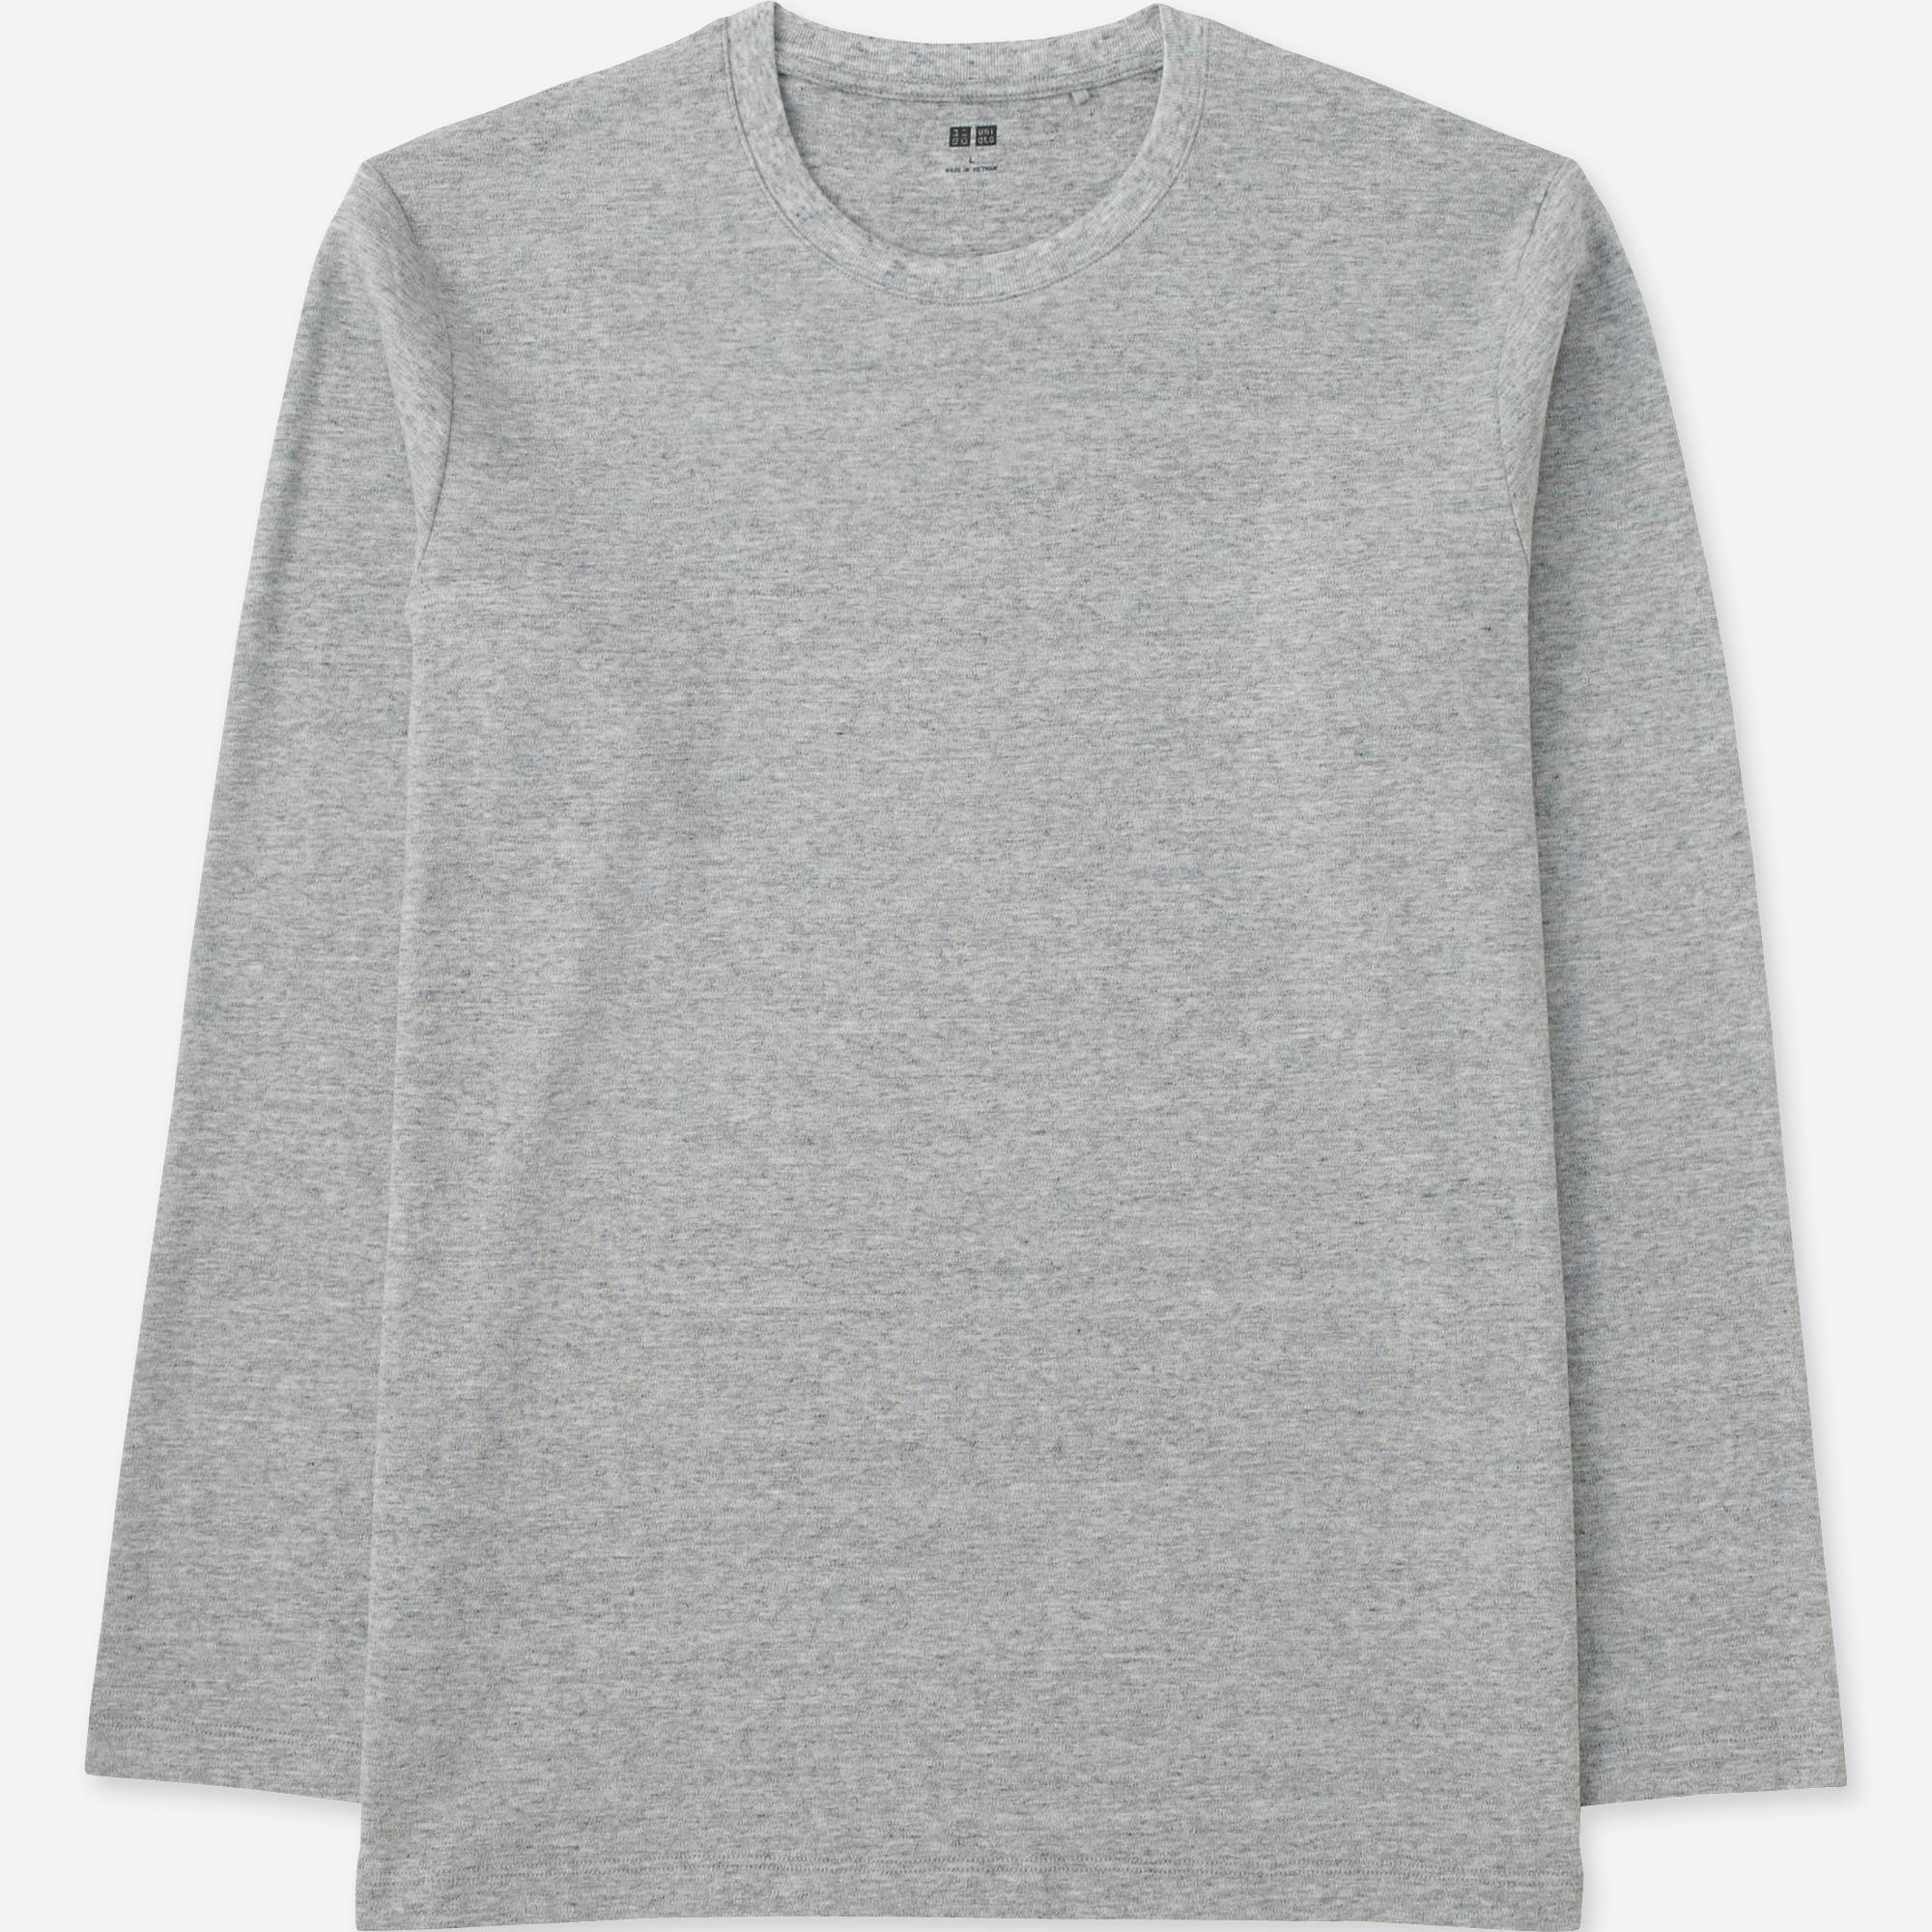 MEN SOFT TOUCH CREWNECK LONG SLEEVE T-SHIRT | UNIQLO US